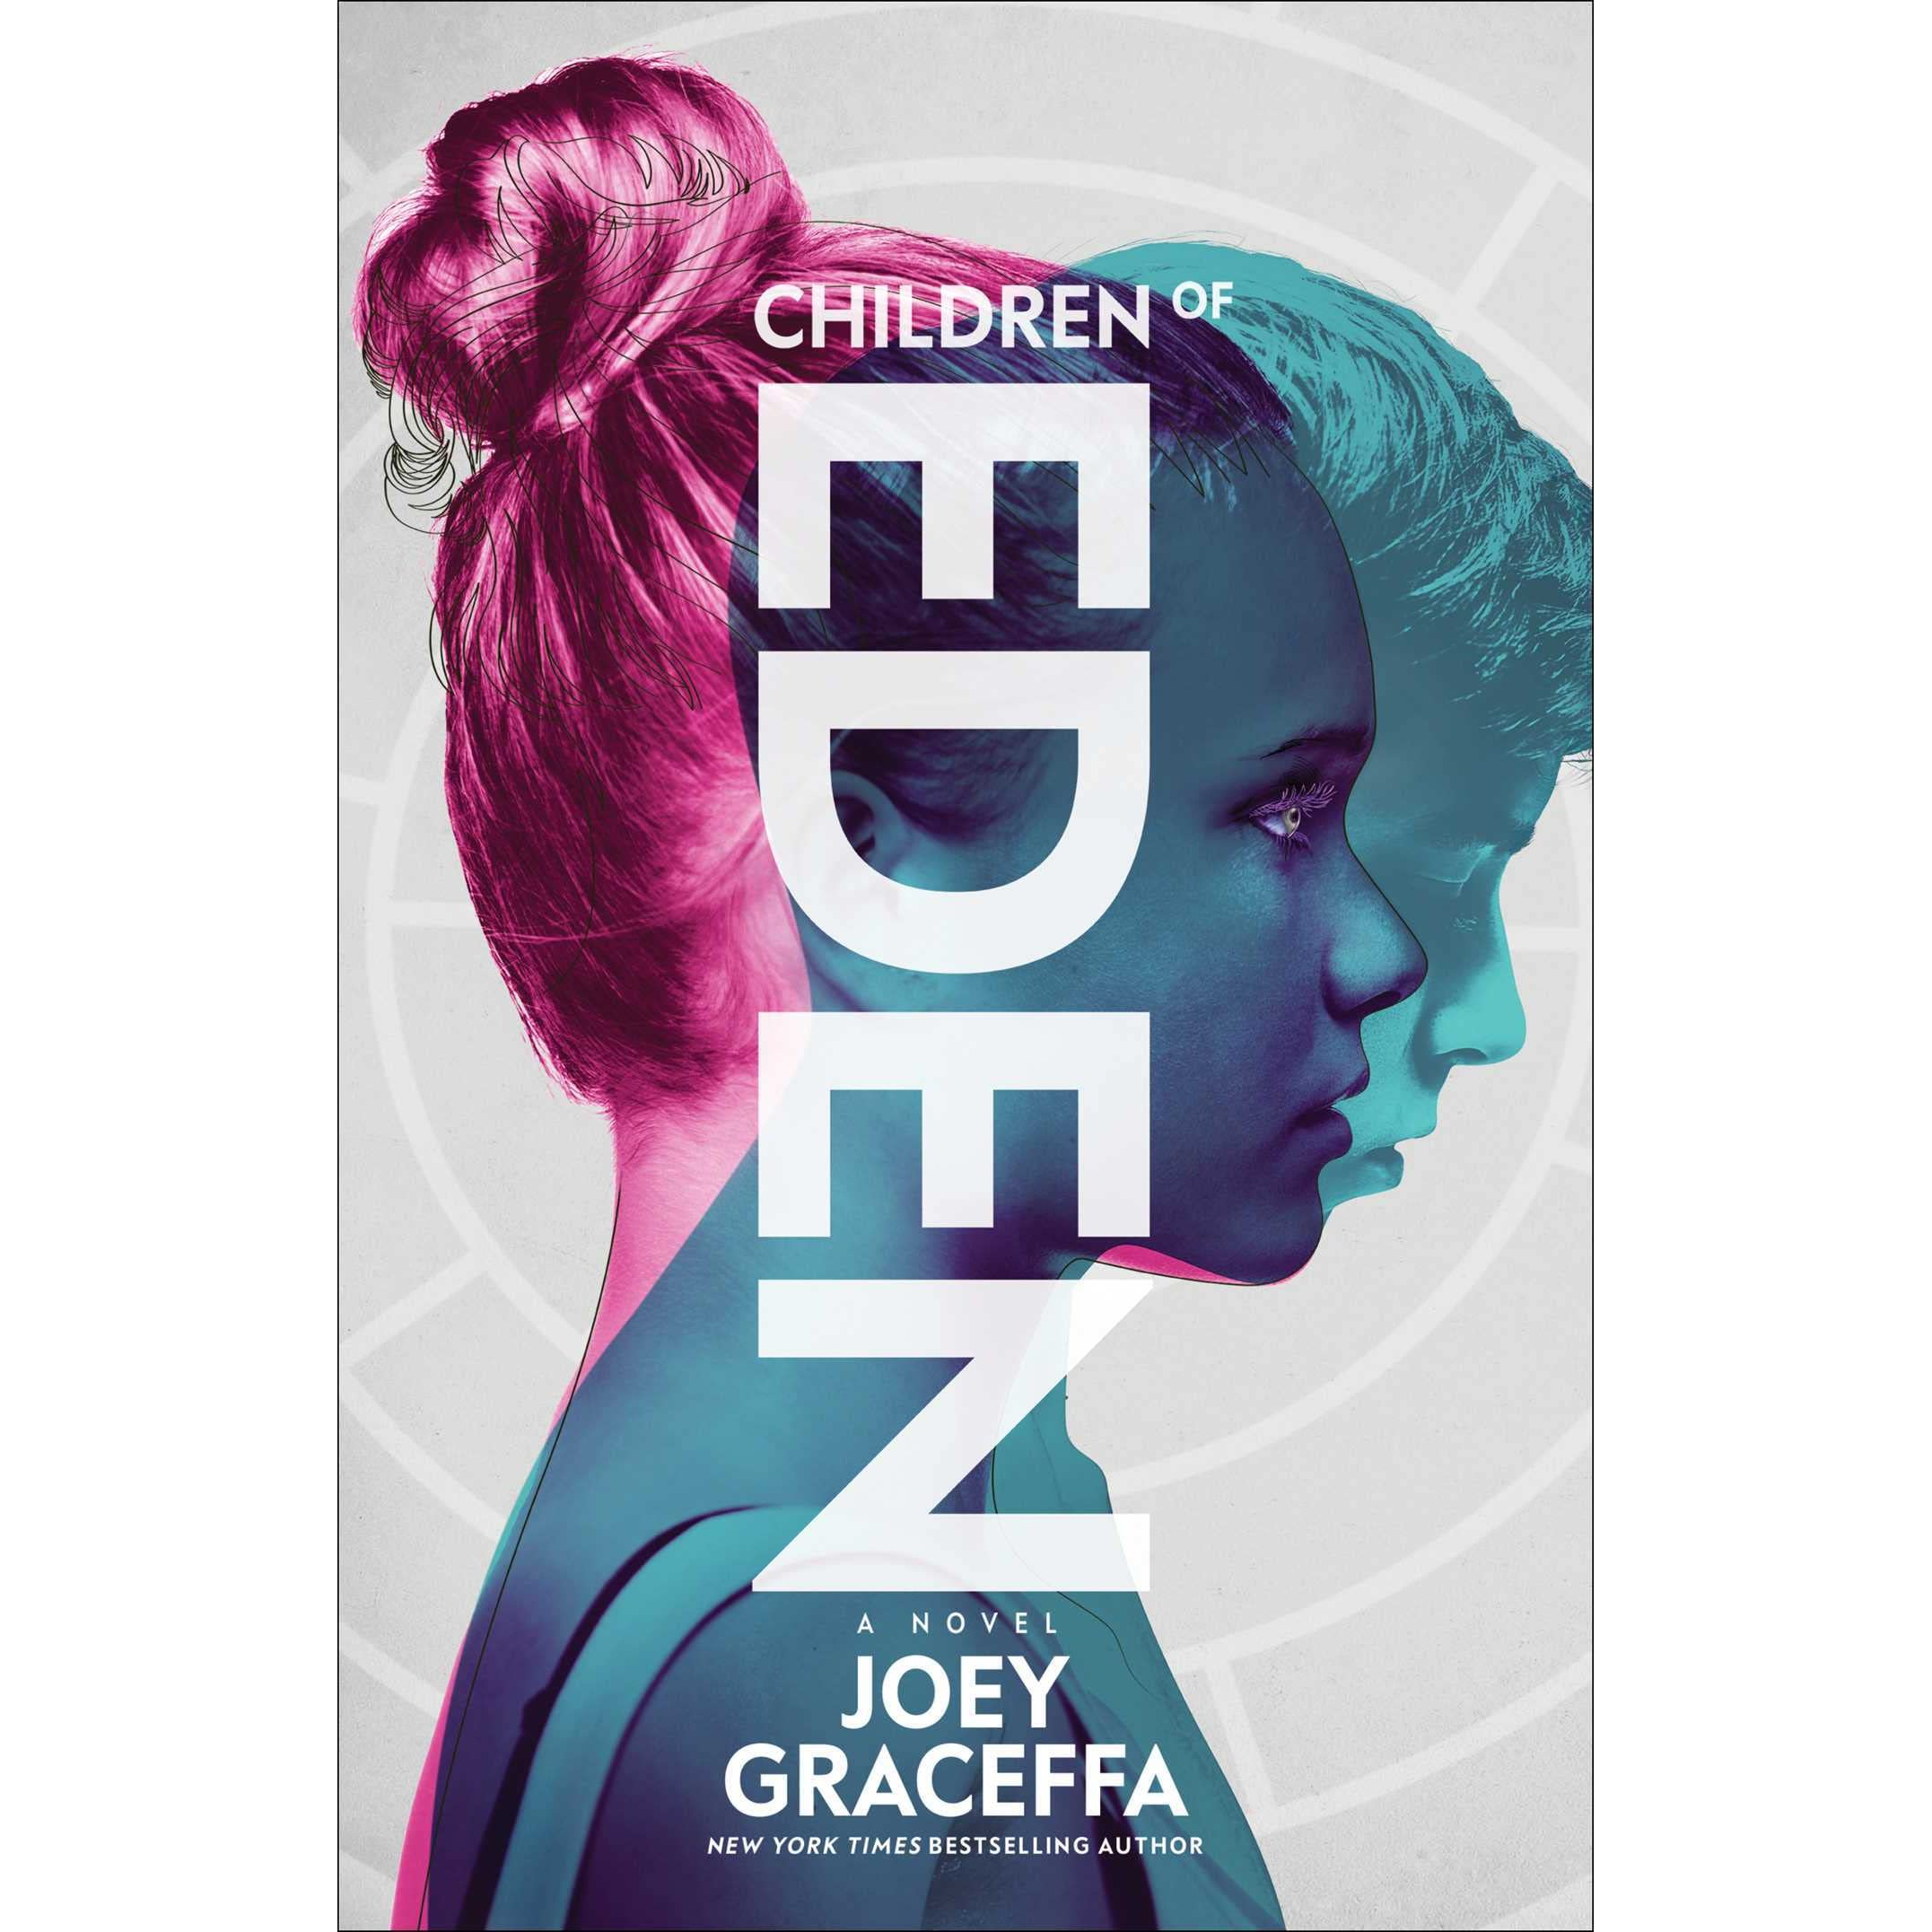 Children Of Eden Book Cover : Children of eden by joey graceffa — reviews discussion